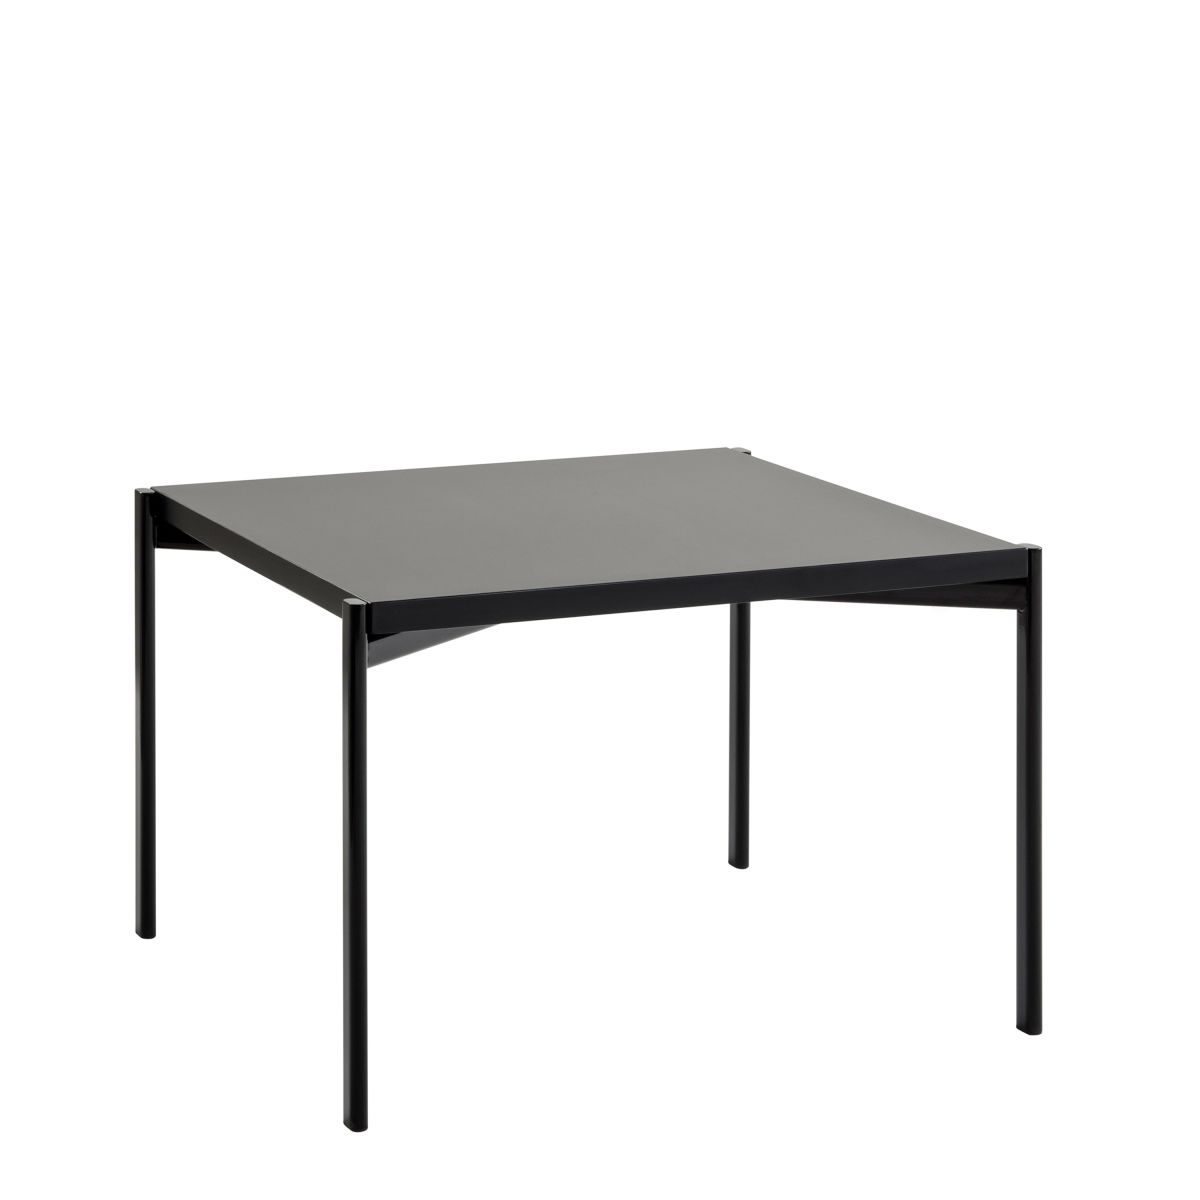 Low Black Table Artek Kiki Low Table